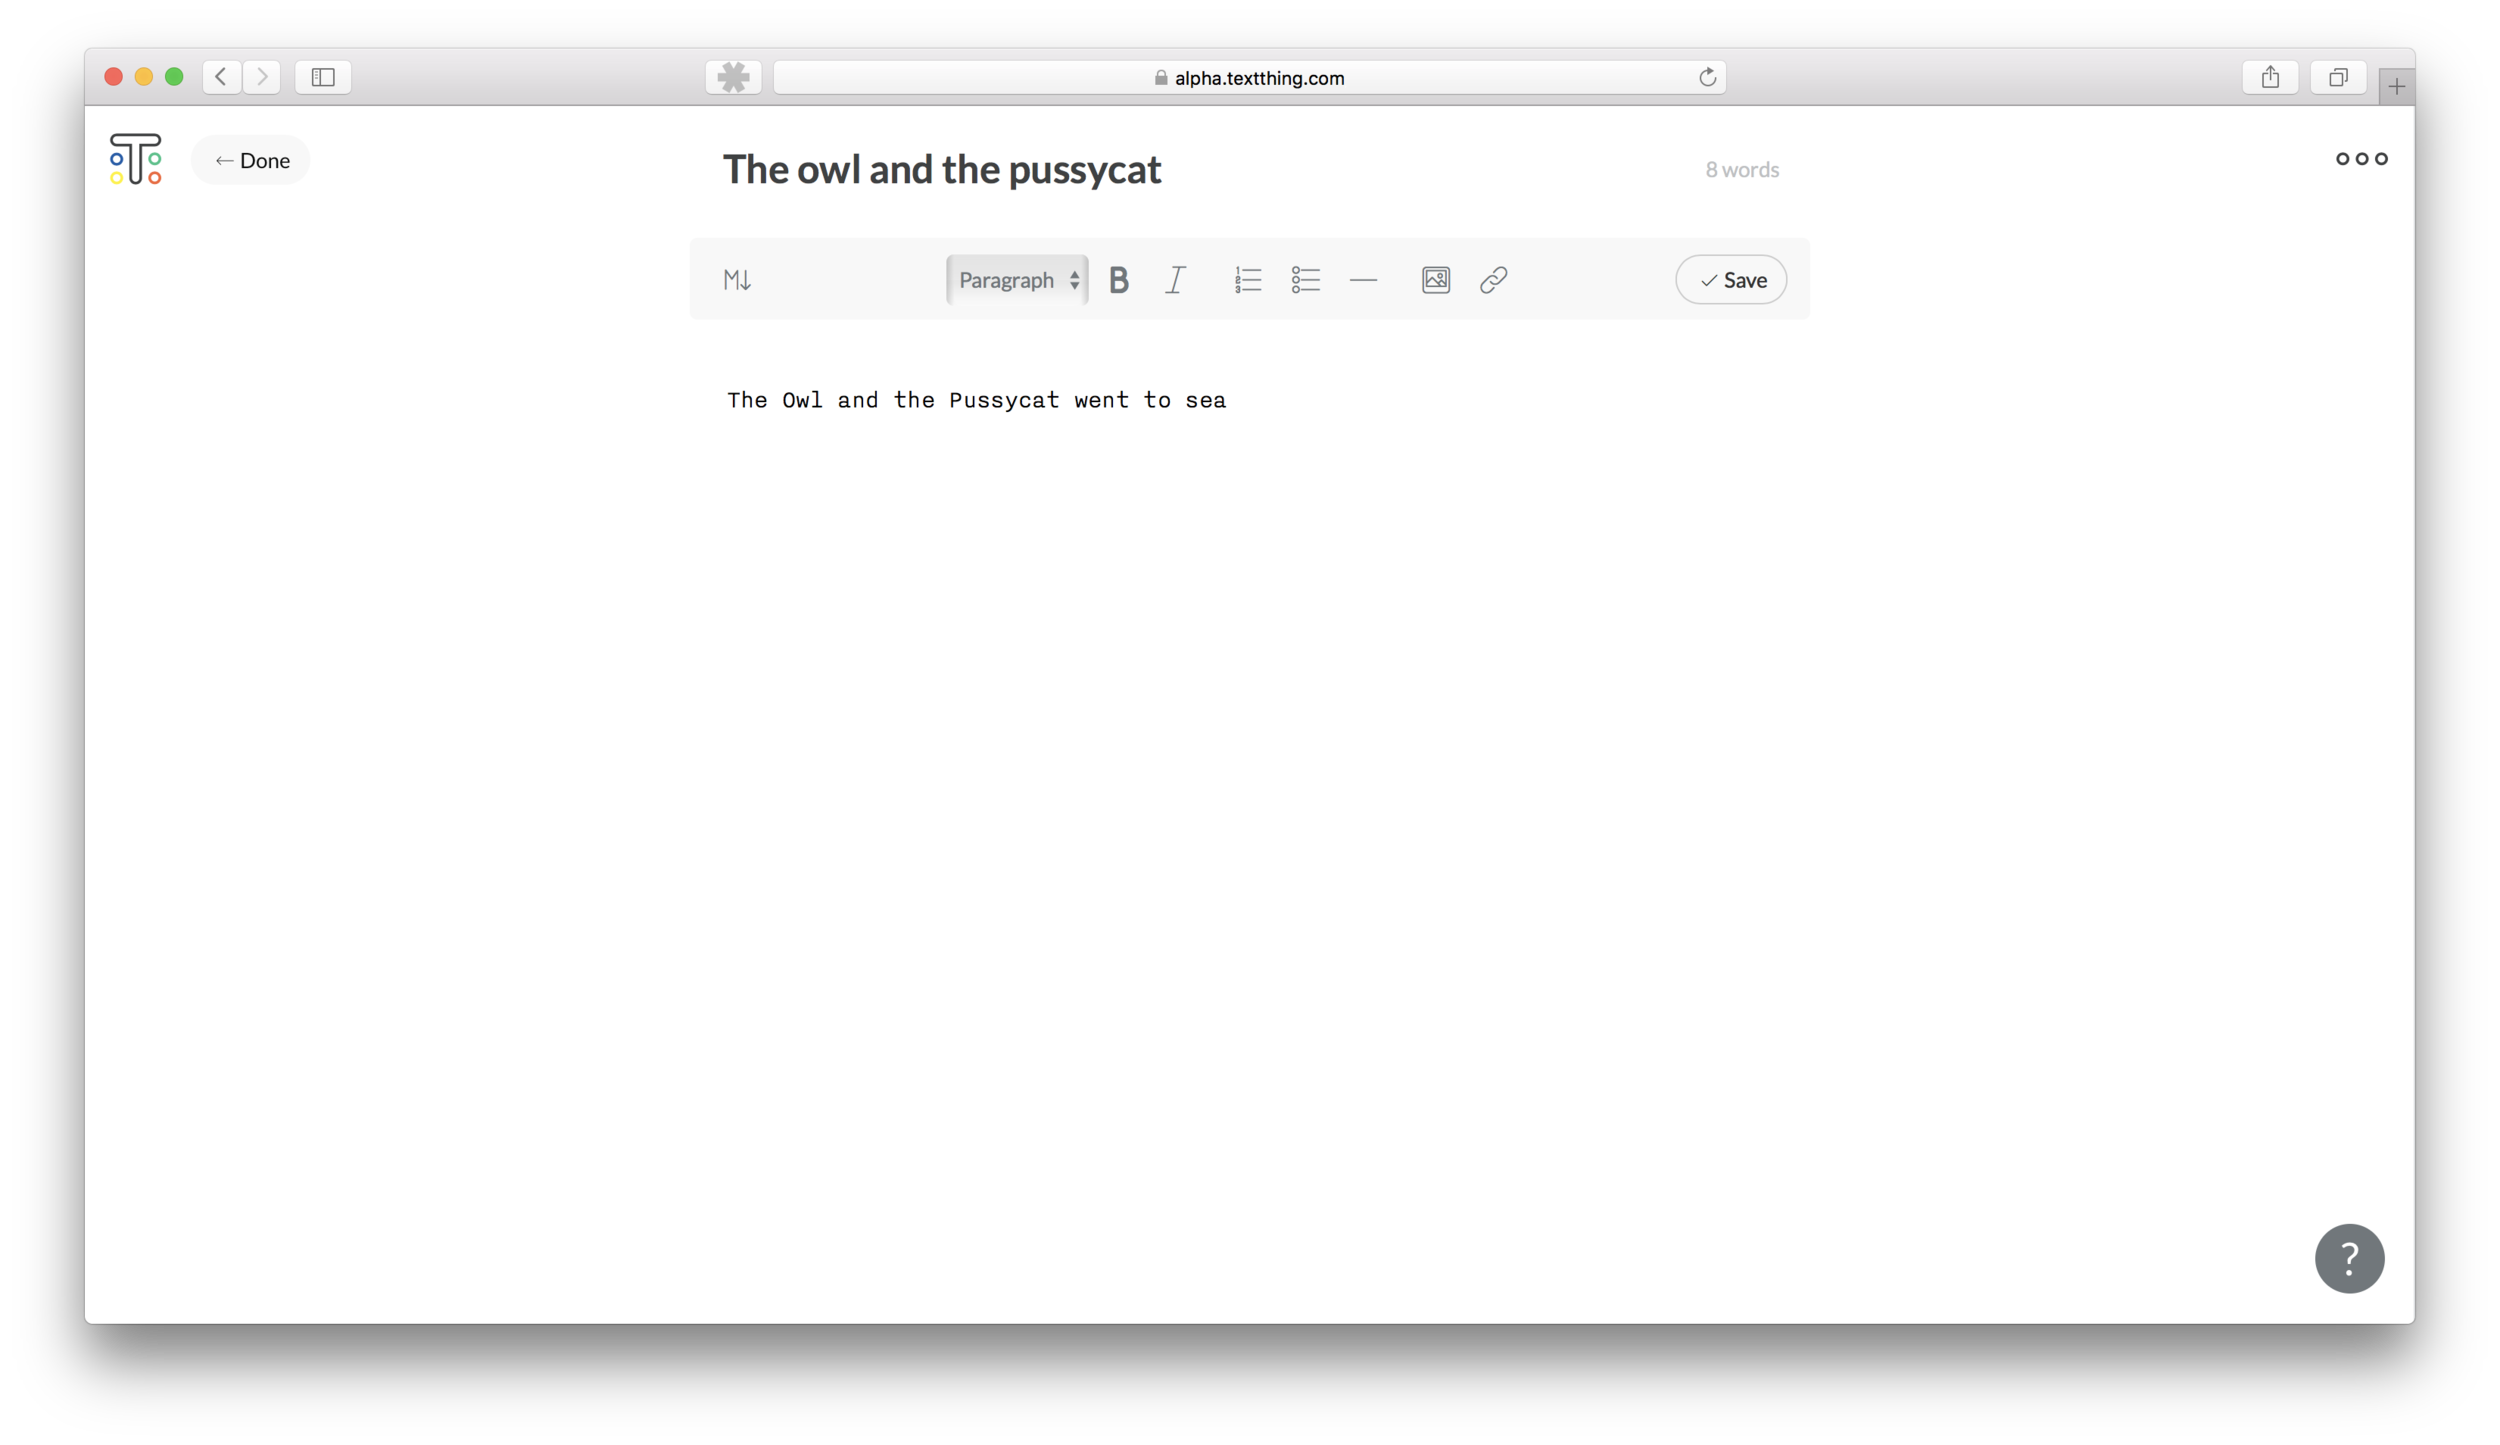 A simple plain text editor that won't distract you